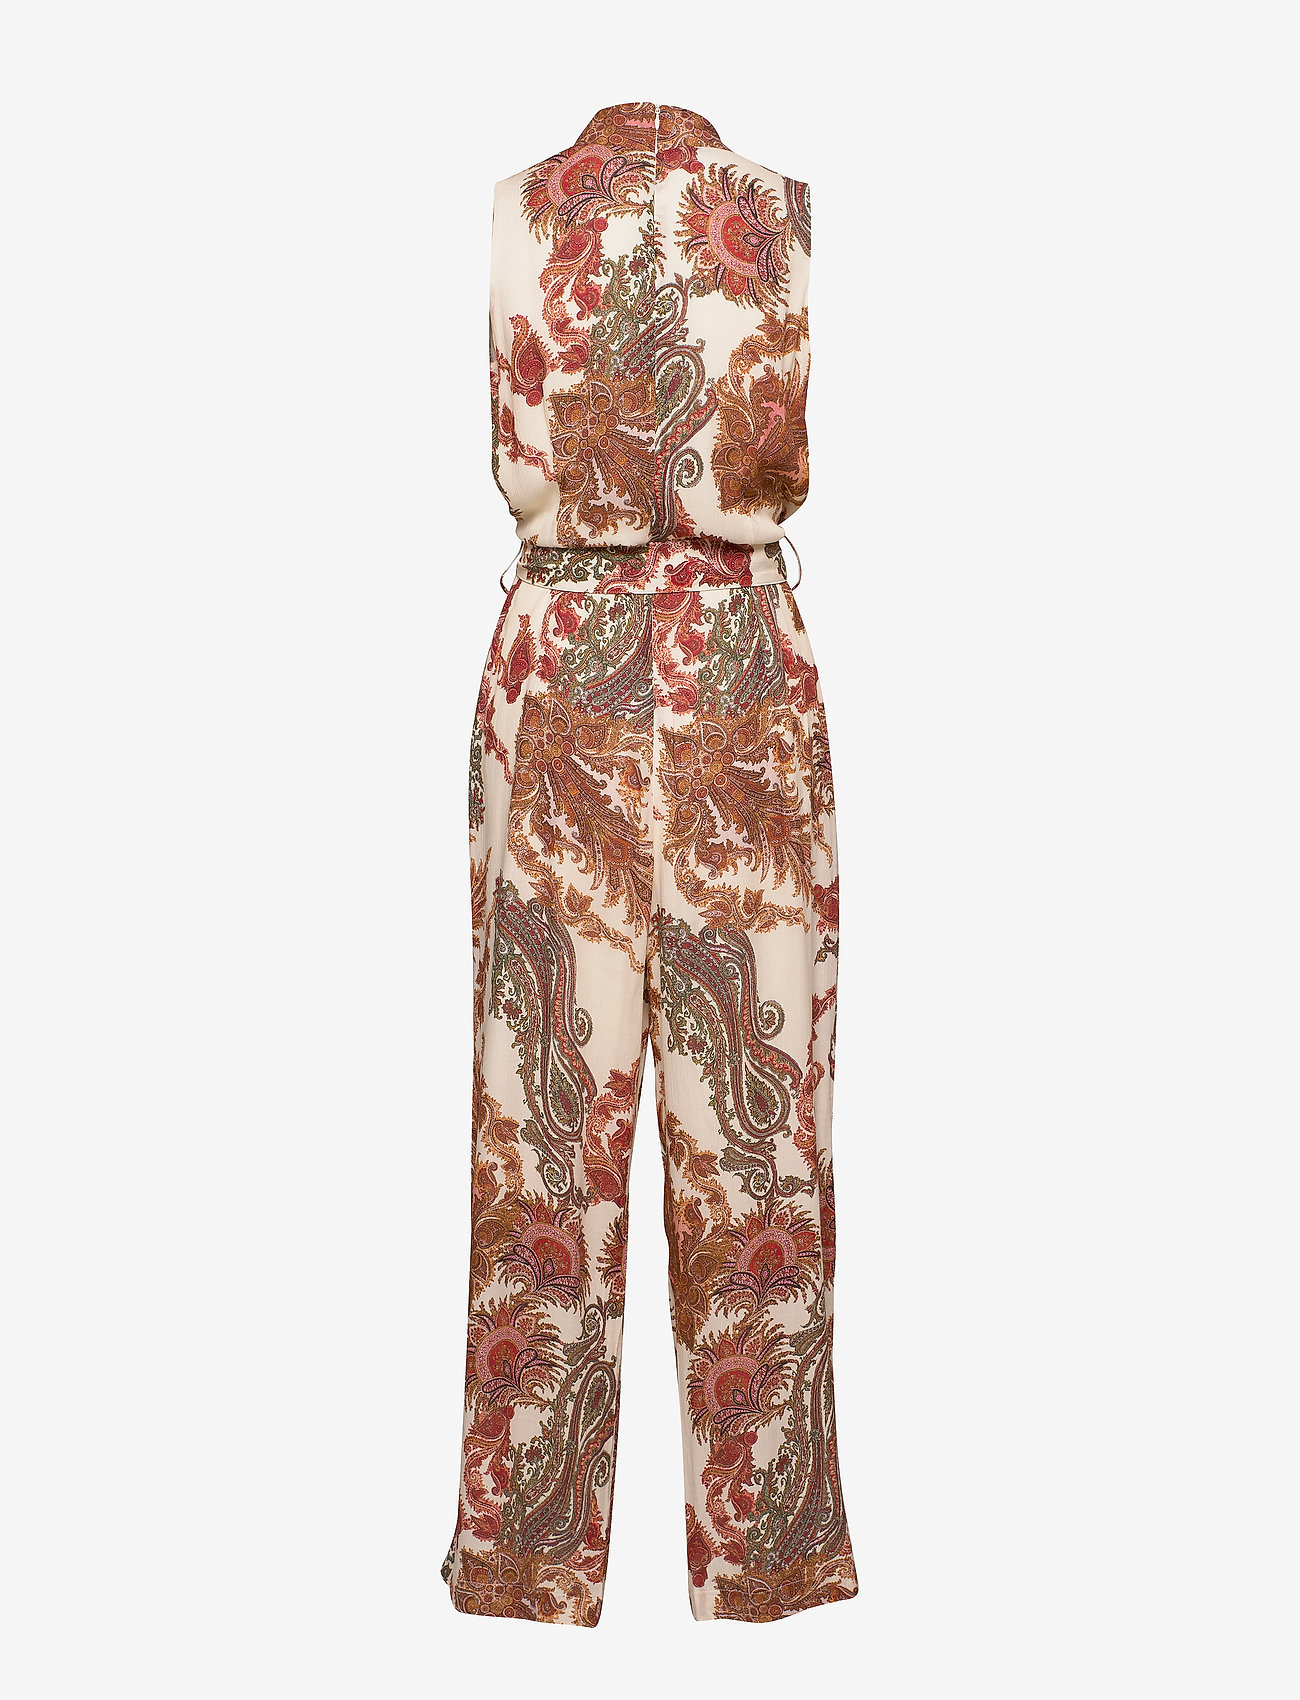 SAND - 3384 - Whitney N - jumpsuits - off white - 1